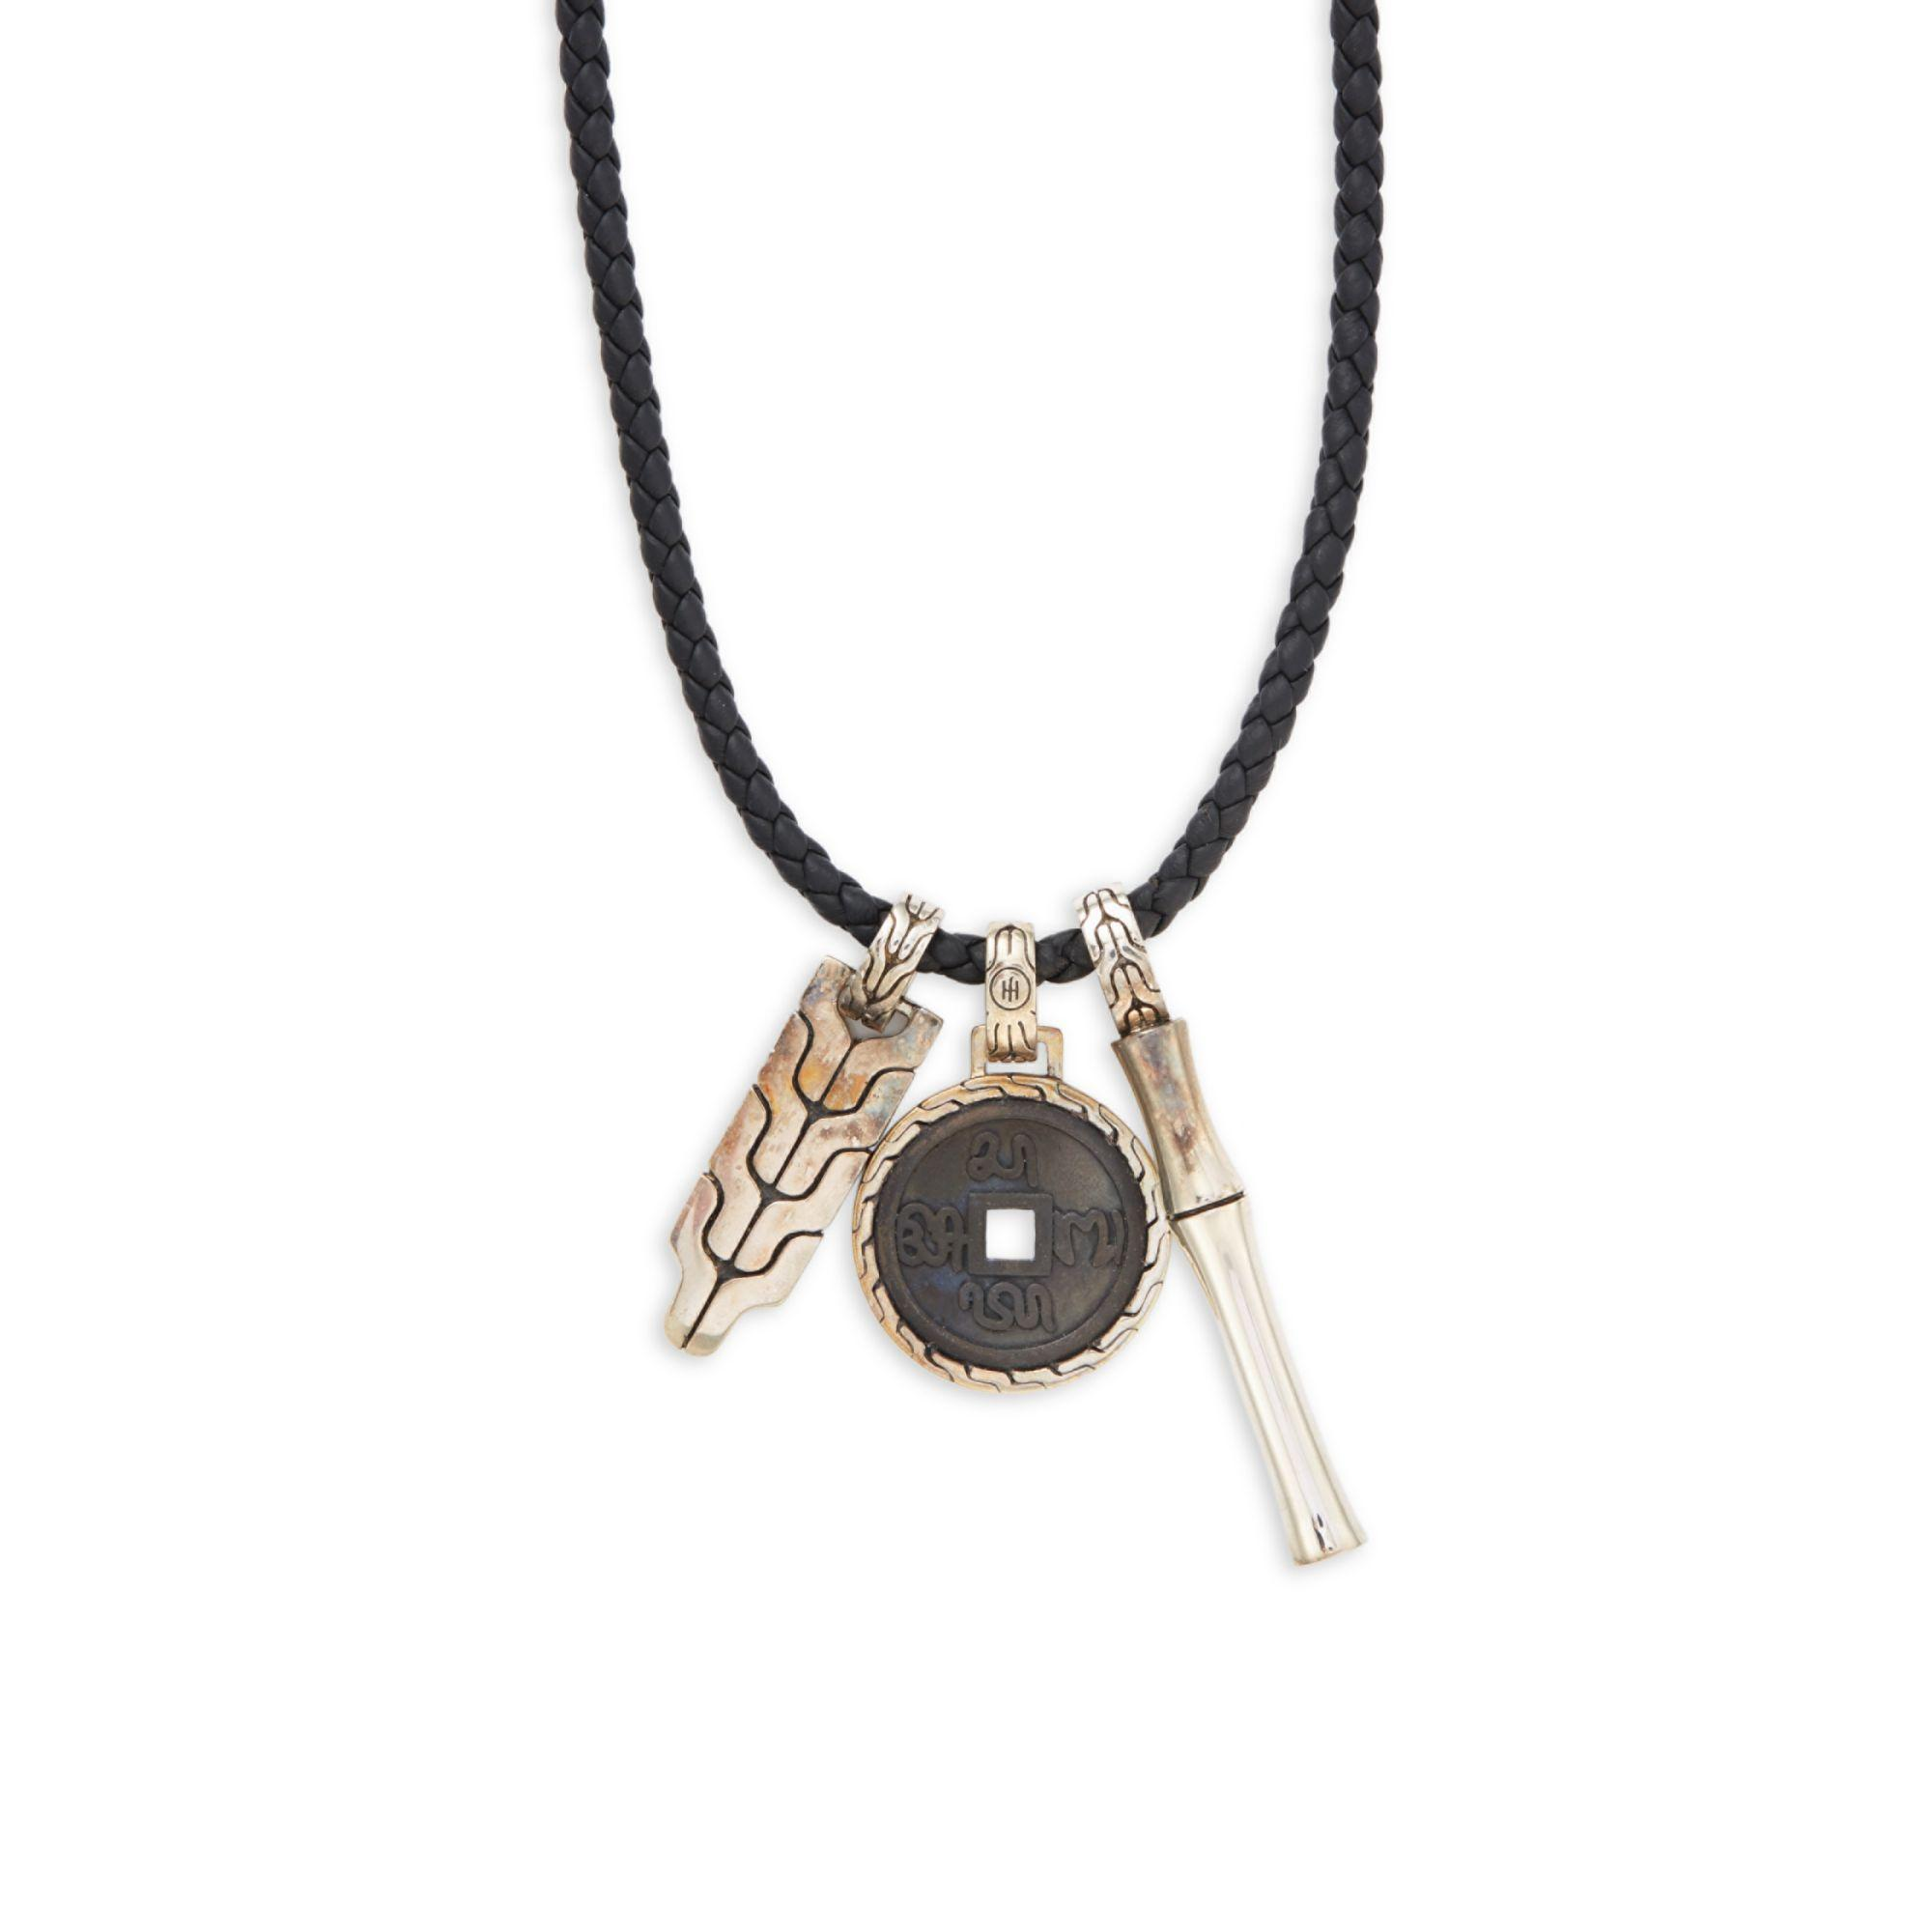 John Hardy Leather Sterling Silver Bamboo Pendant Necklace in Black for Men - Save 38%